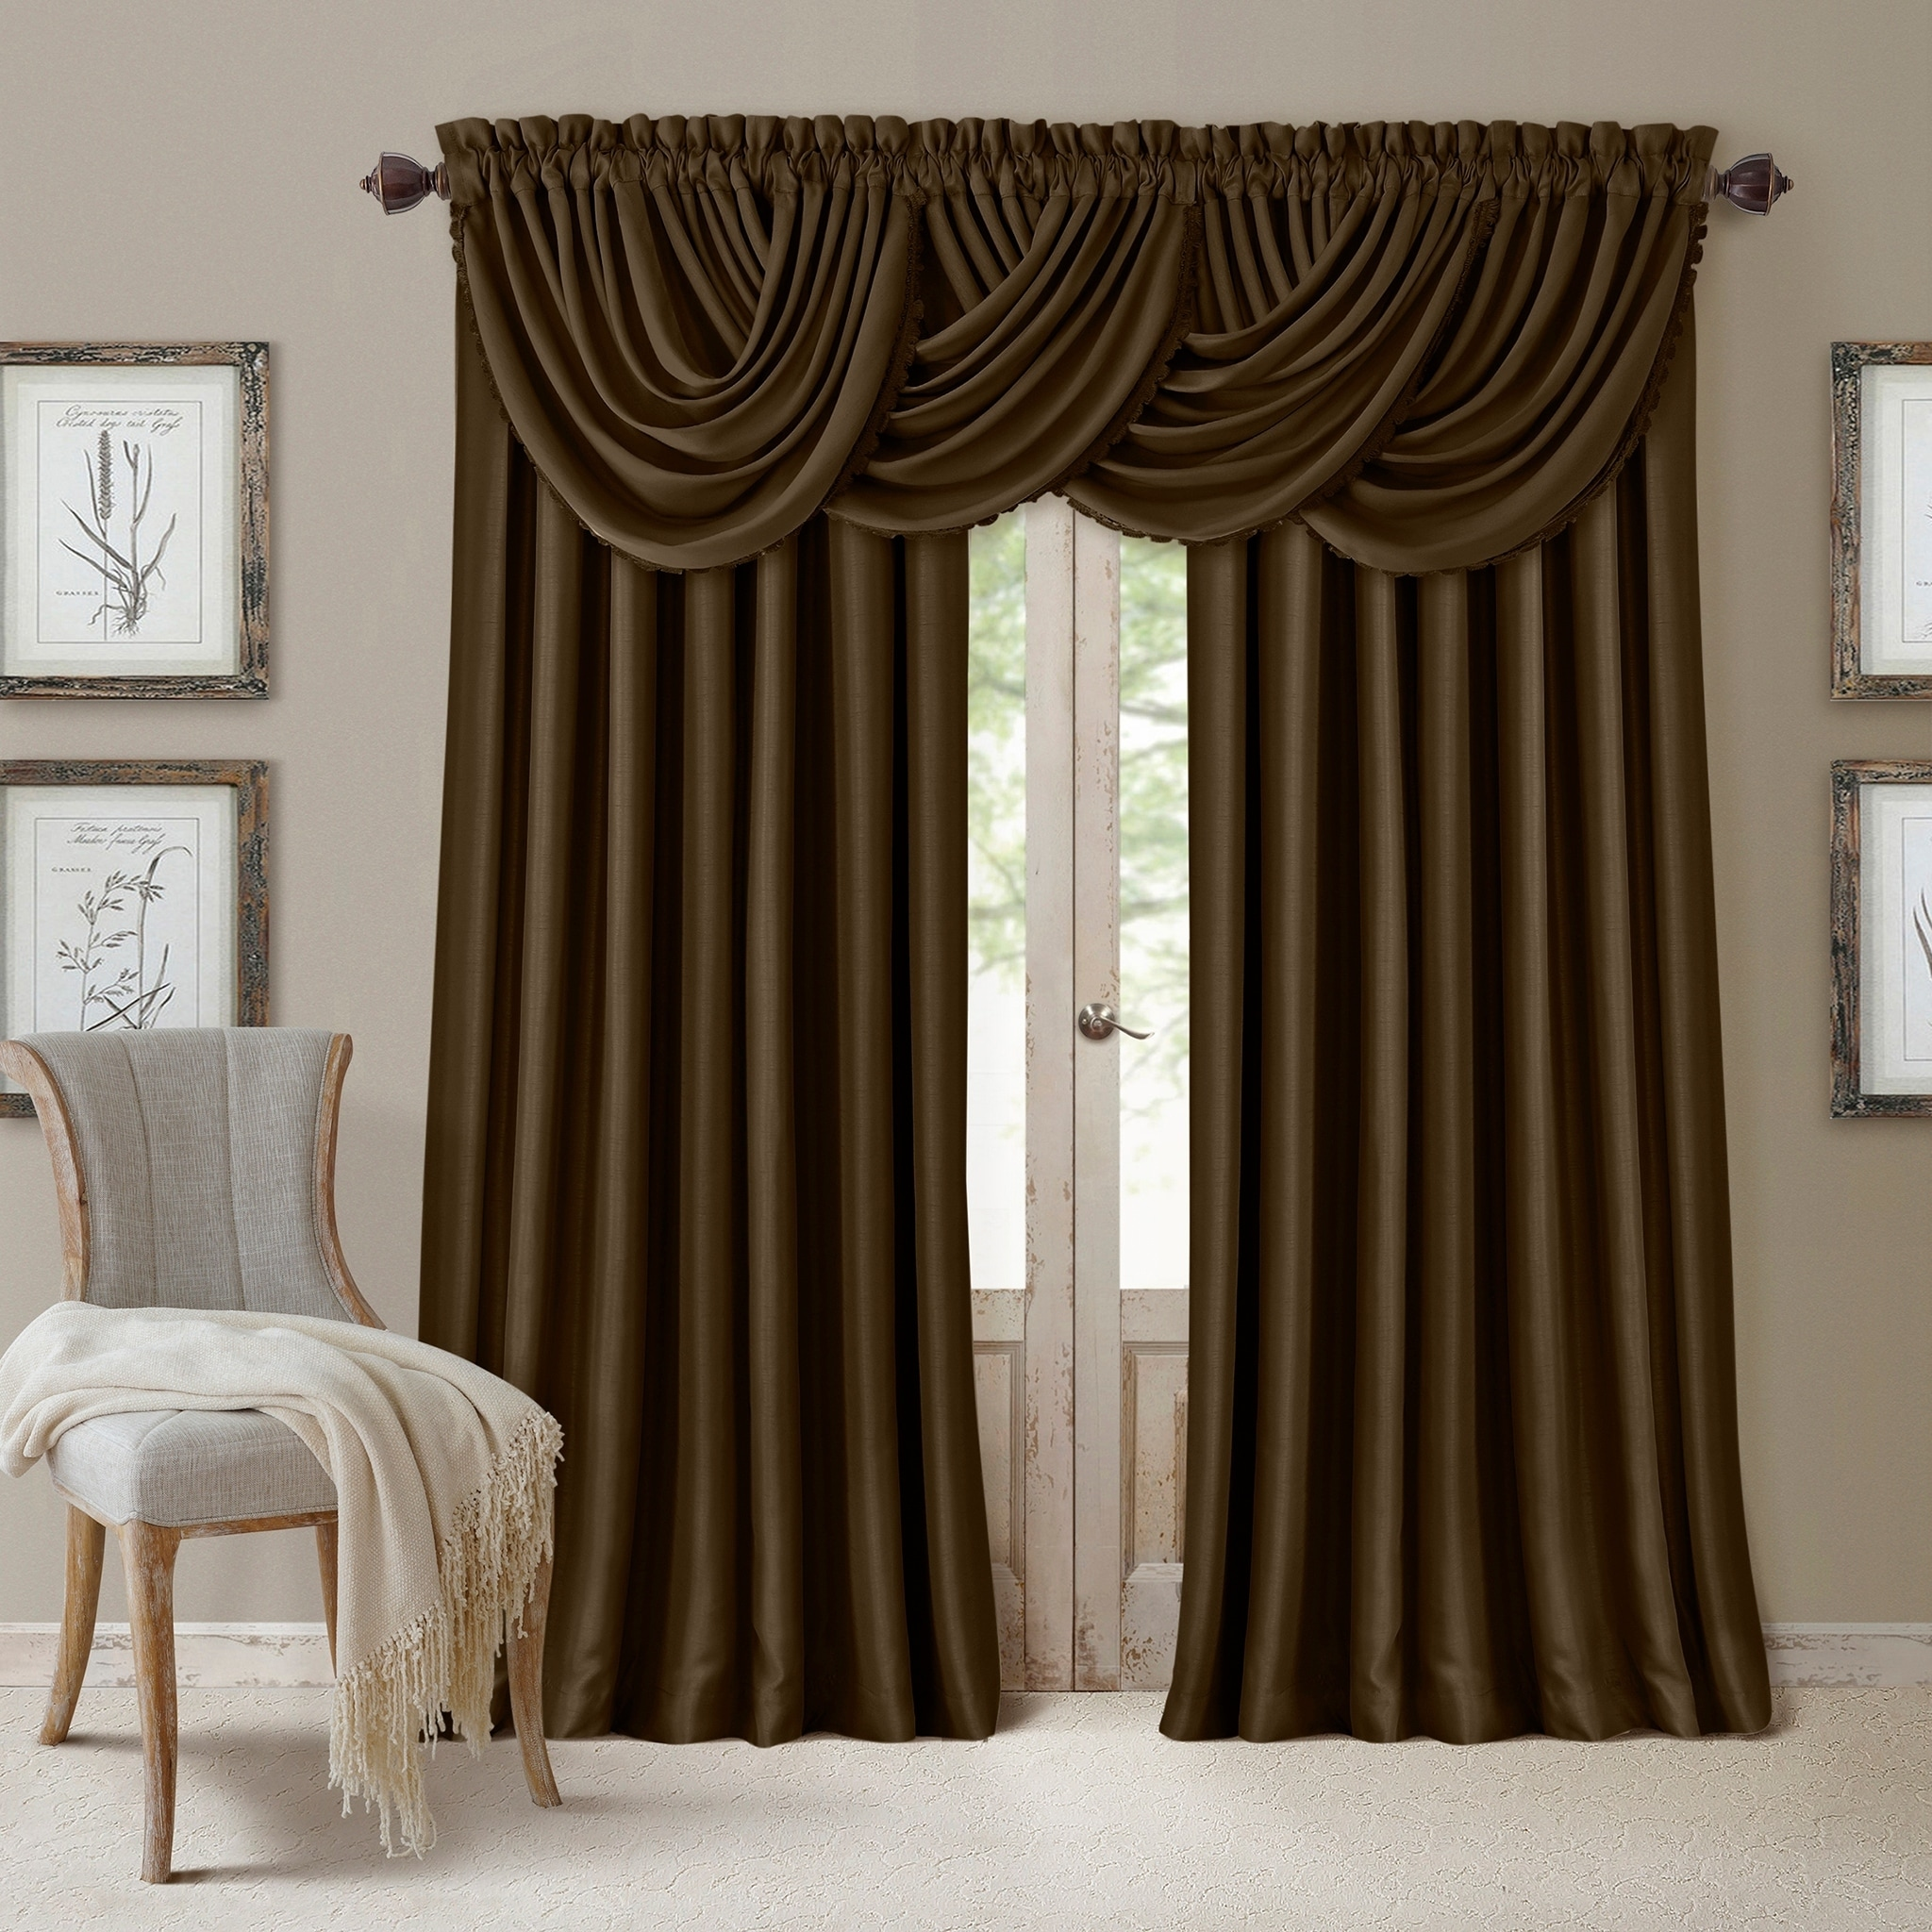 All Seasons Waterfall Window Valance 52 X36 Overstock 14741344 Black